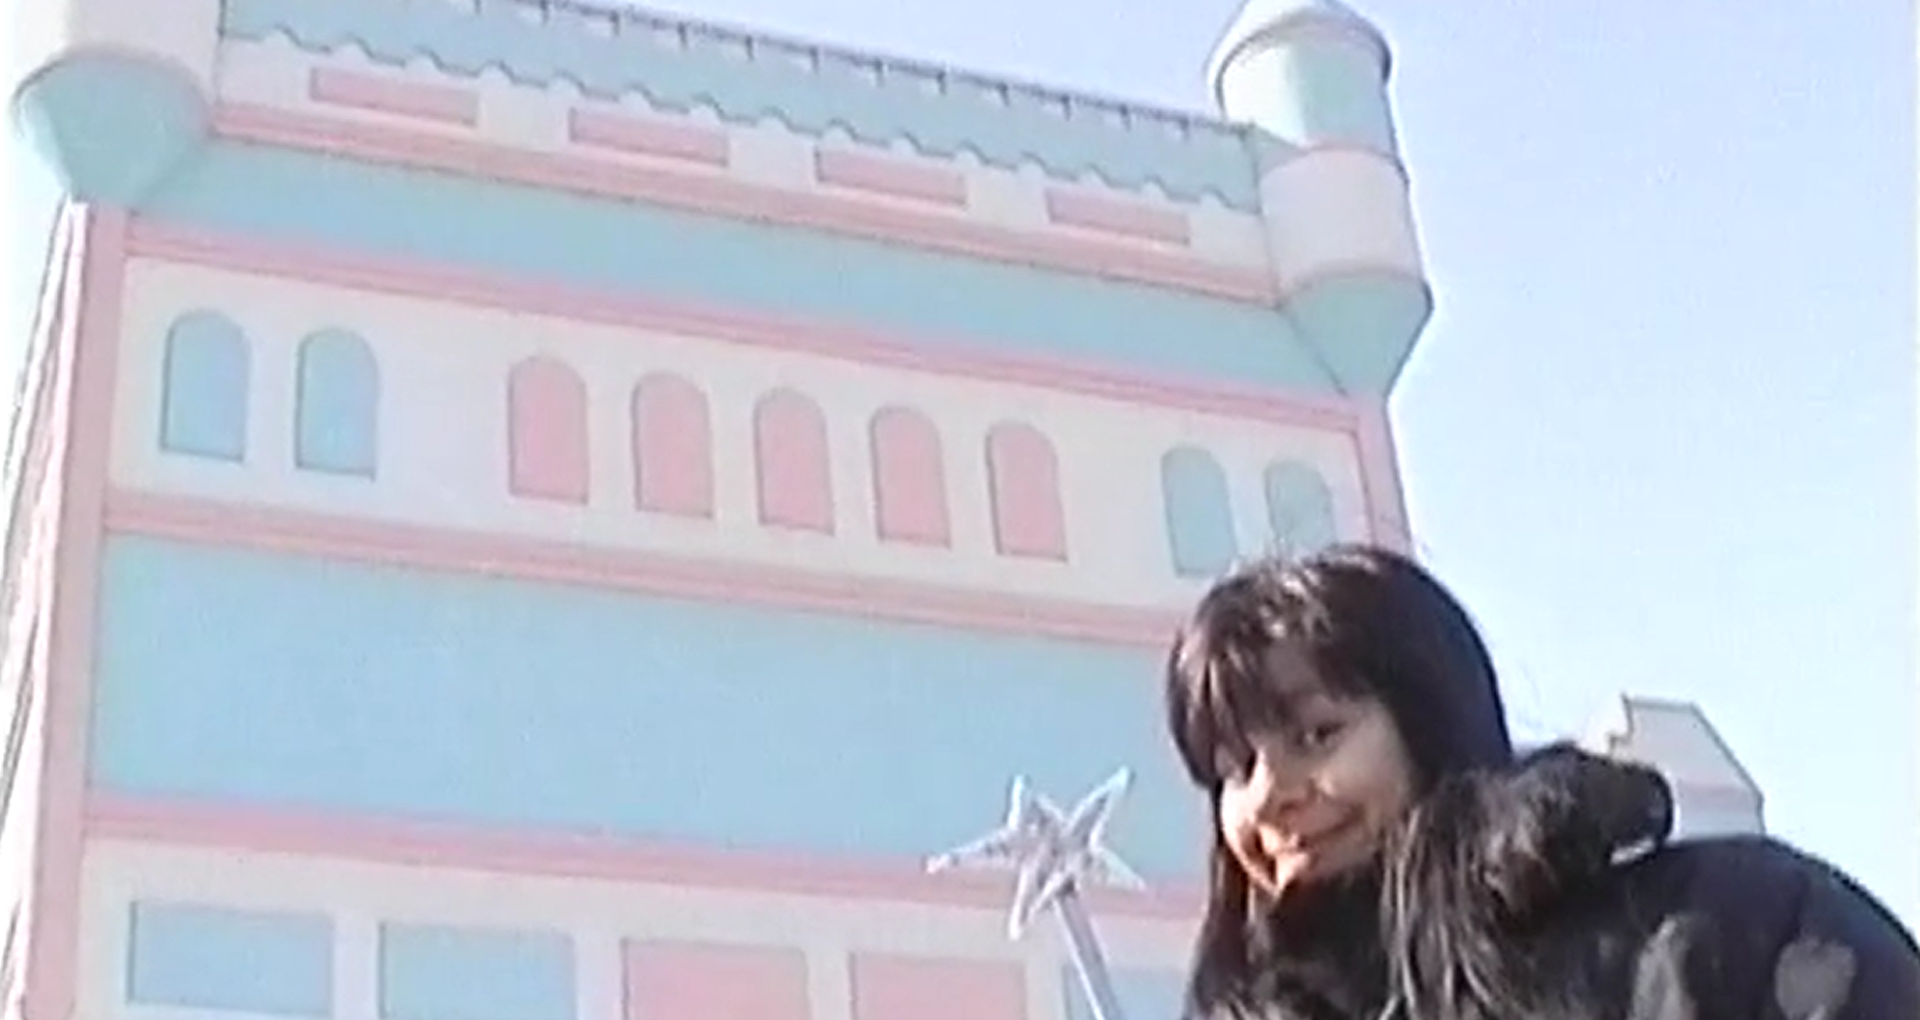 Giant blue and pin castle, with a brown hair woman in front of it